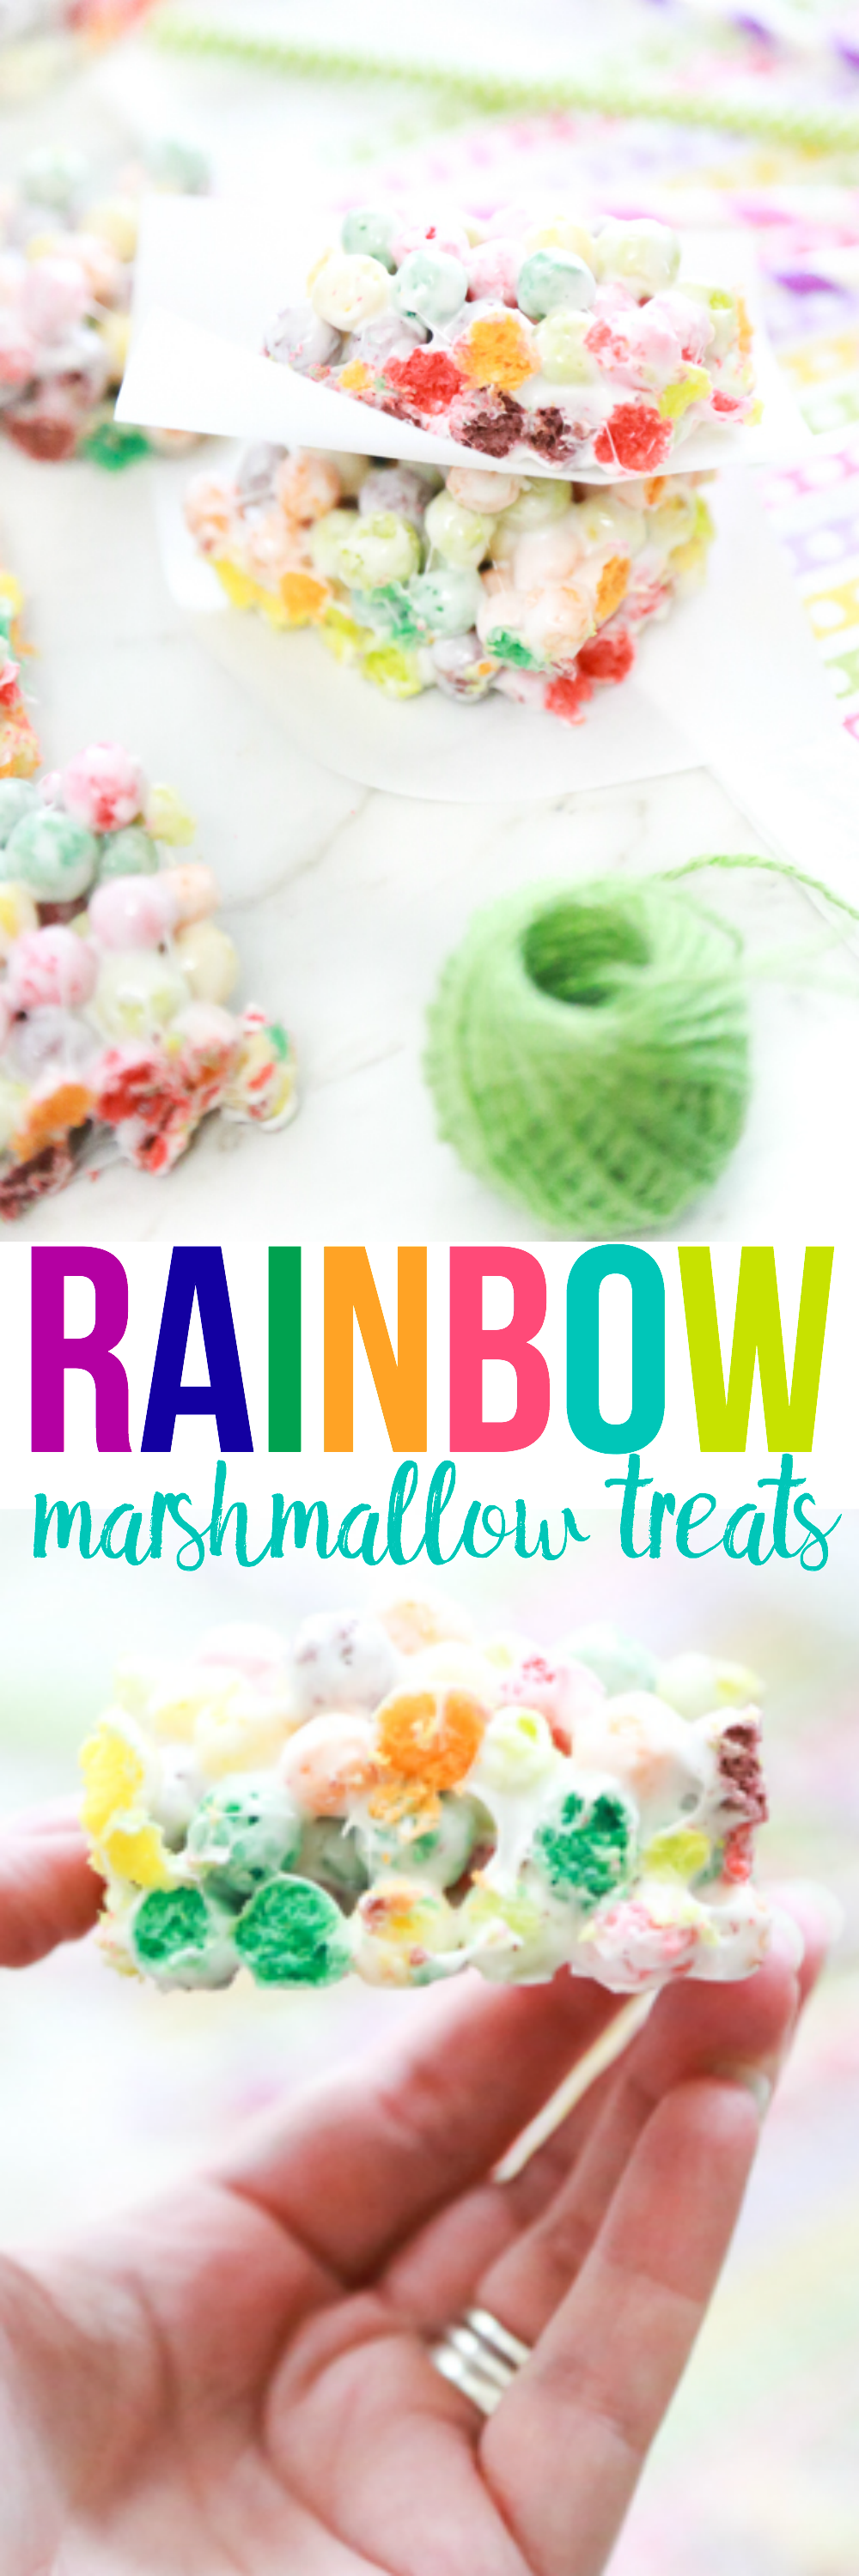 a collage of photos featuring rainbow marshmallow treats